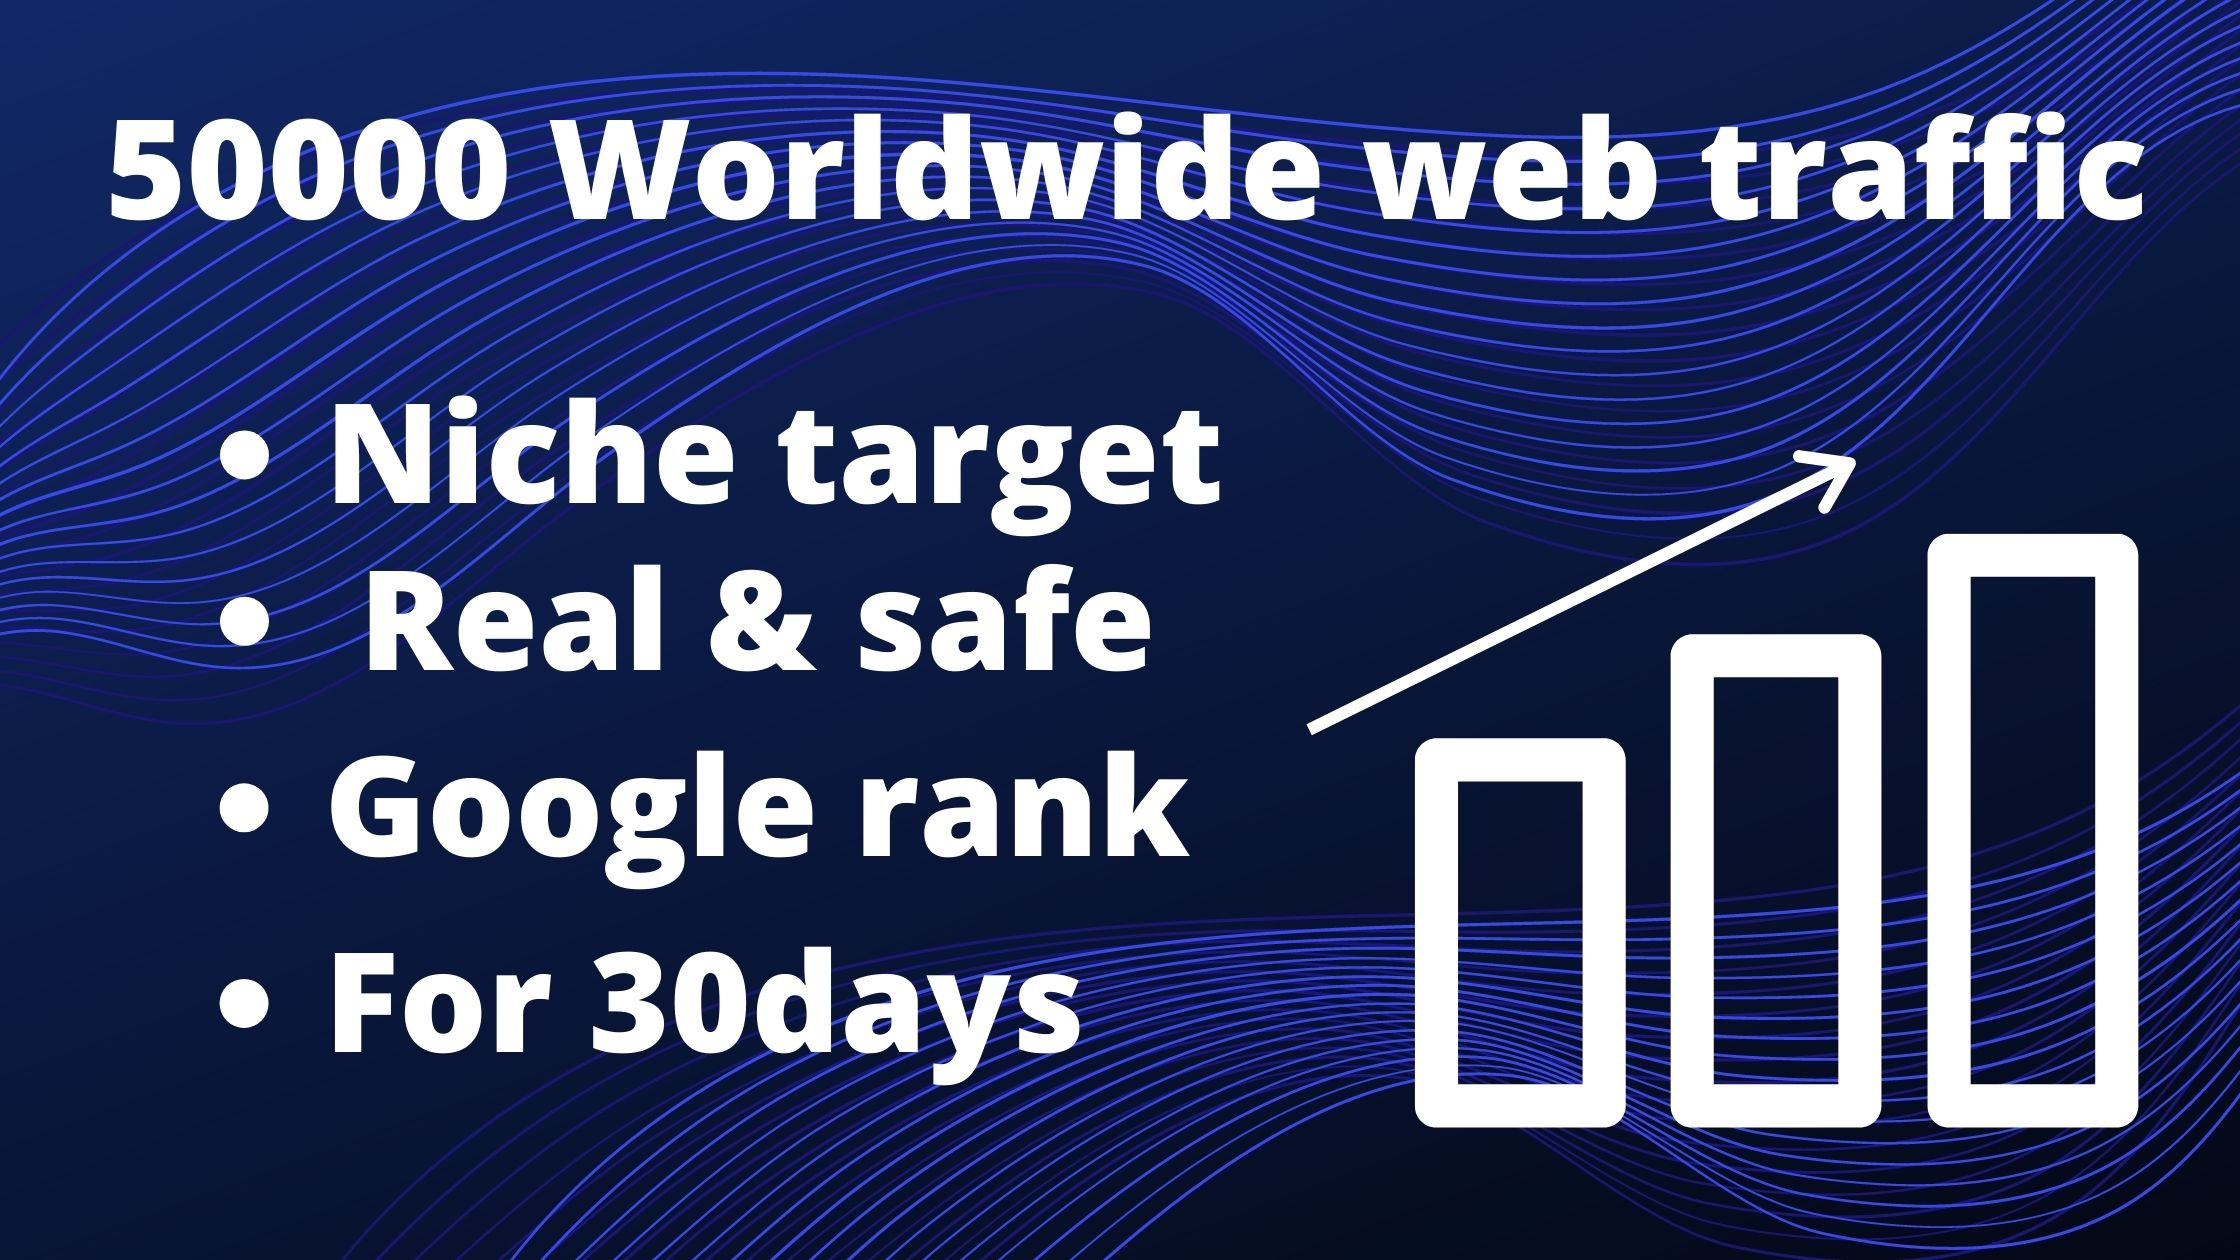 I will send 50,000 real USA web traffic to your website in 5 days